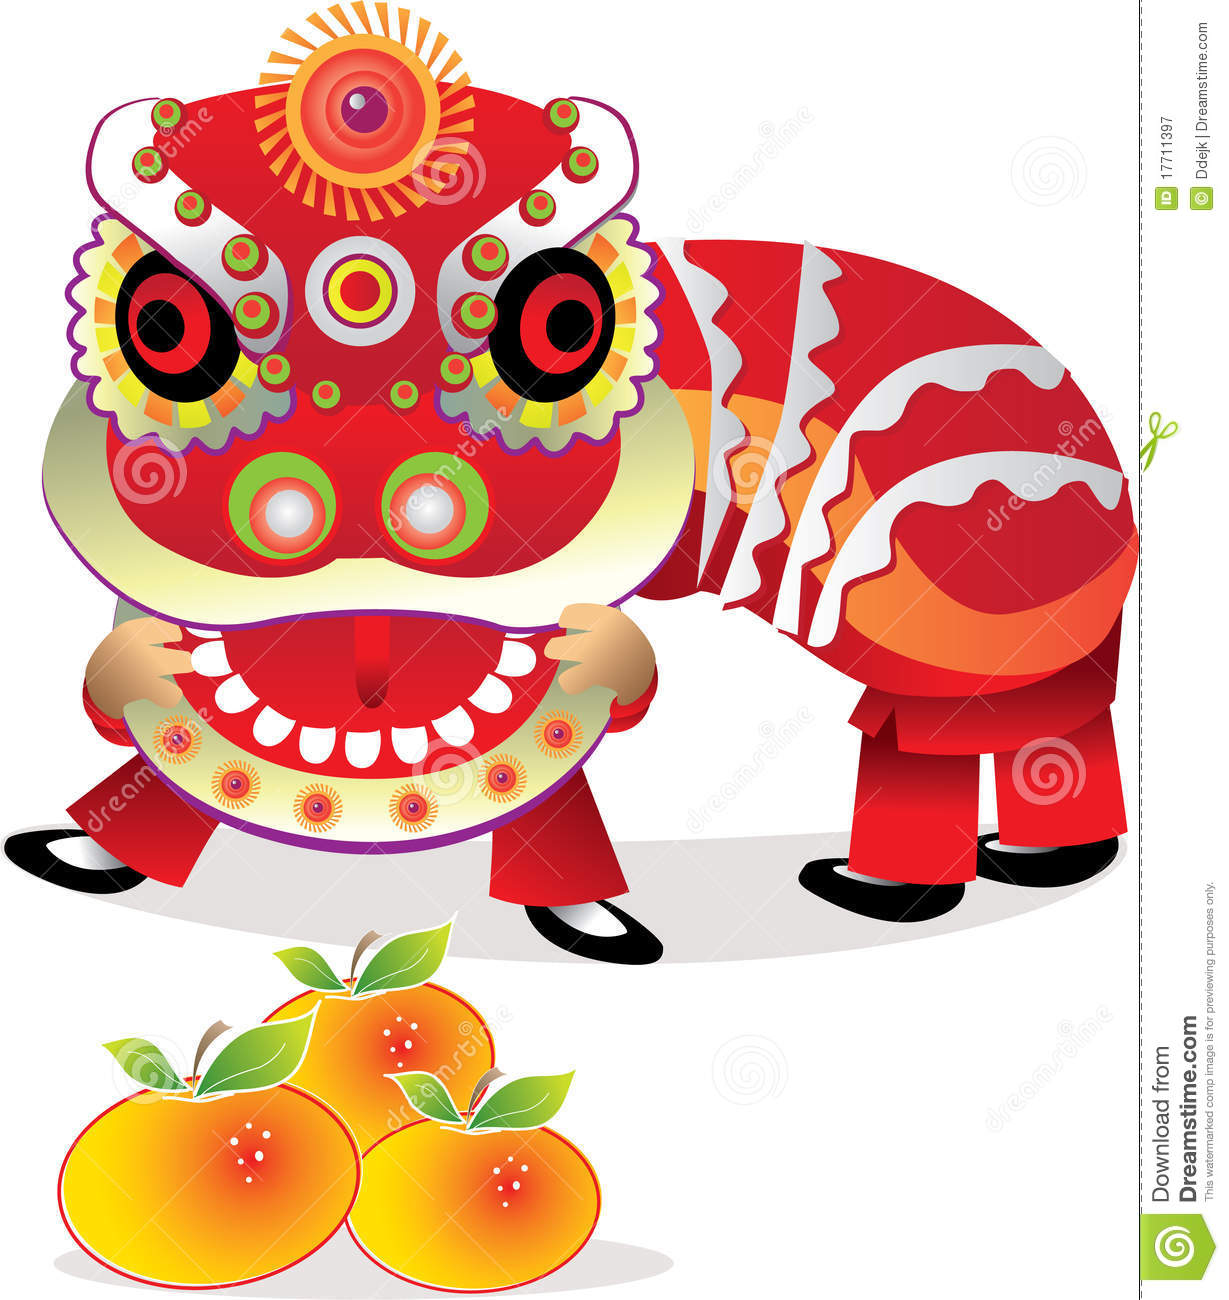 Chinese new year clipart 7 » Clipart Station.